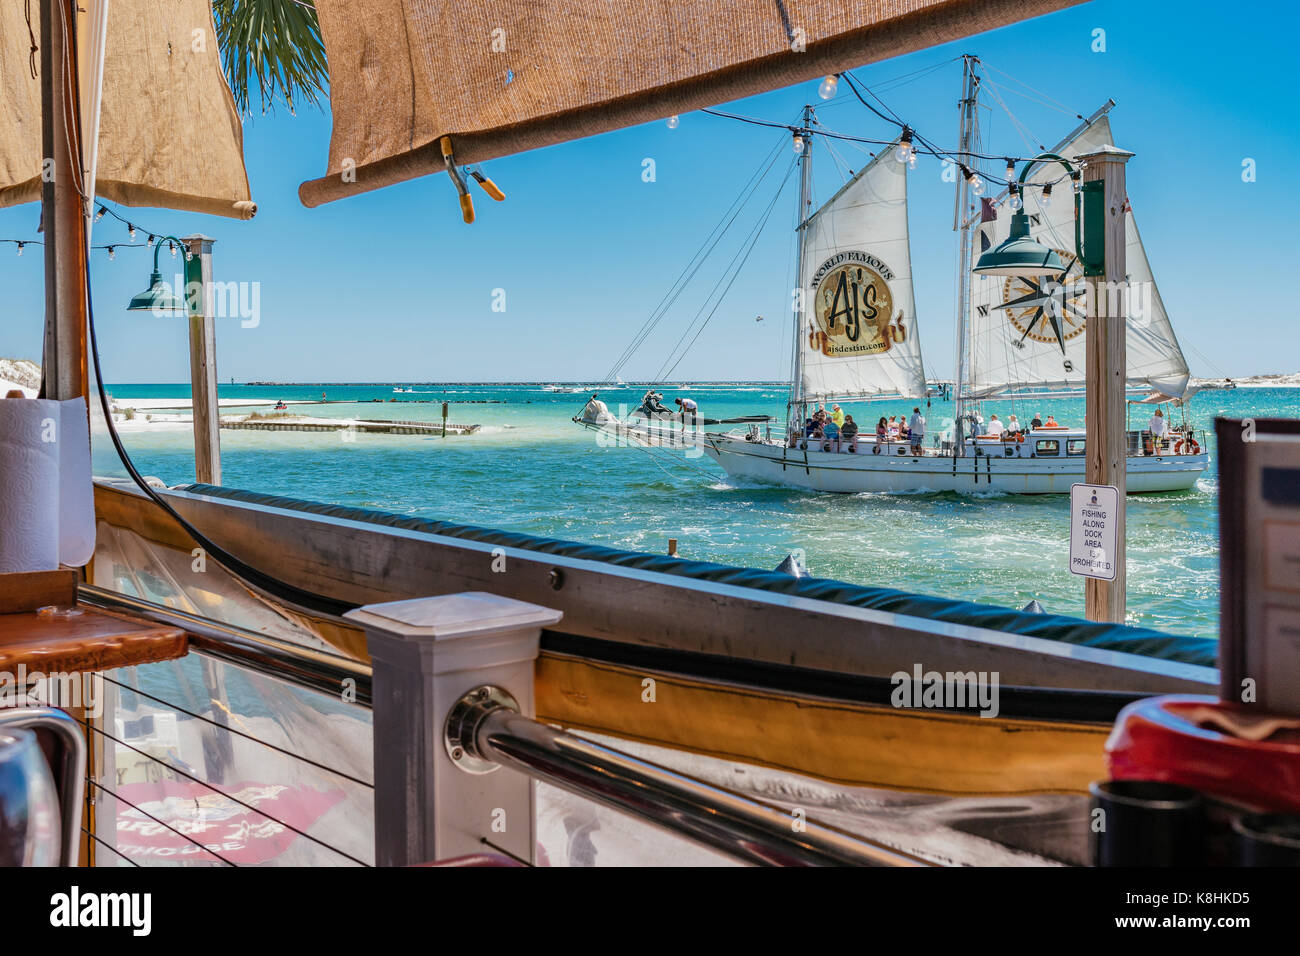 View of East Pass with a passing sailboat, in Destin Florida, from Harry T's restaurant, at Harborwalk Marina.Stock Photo